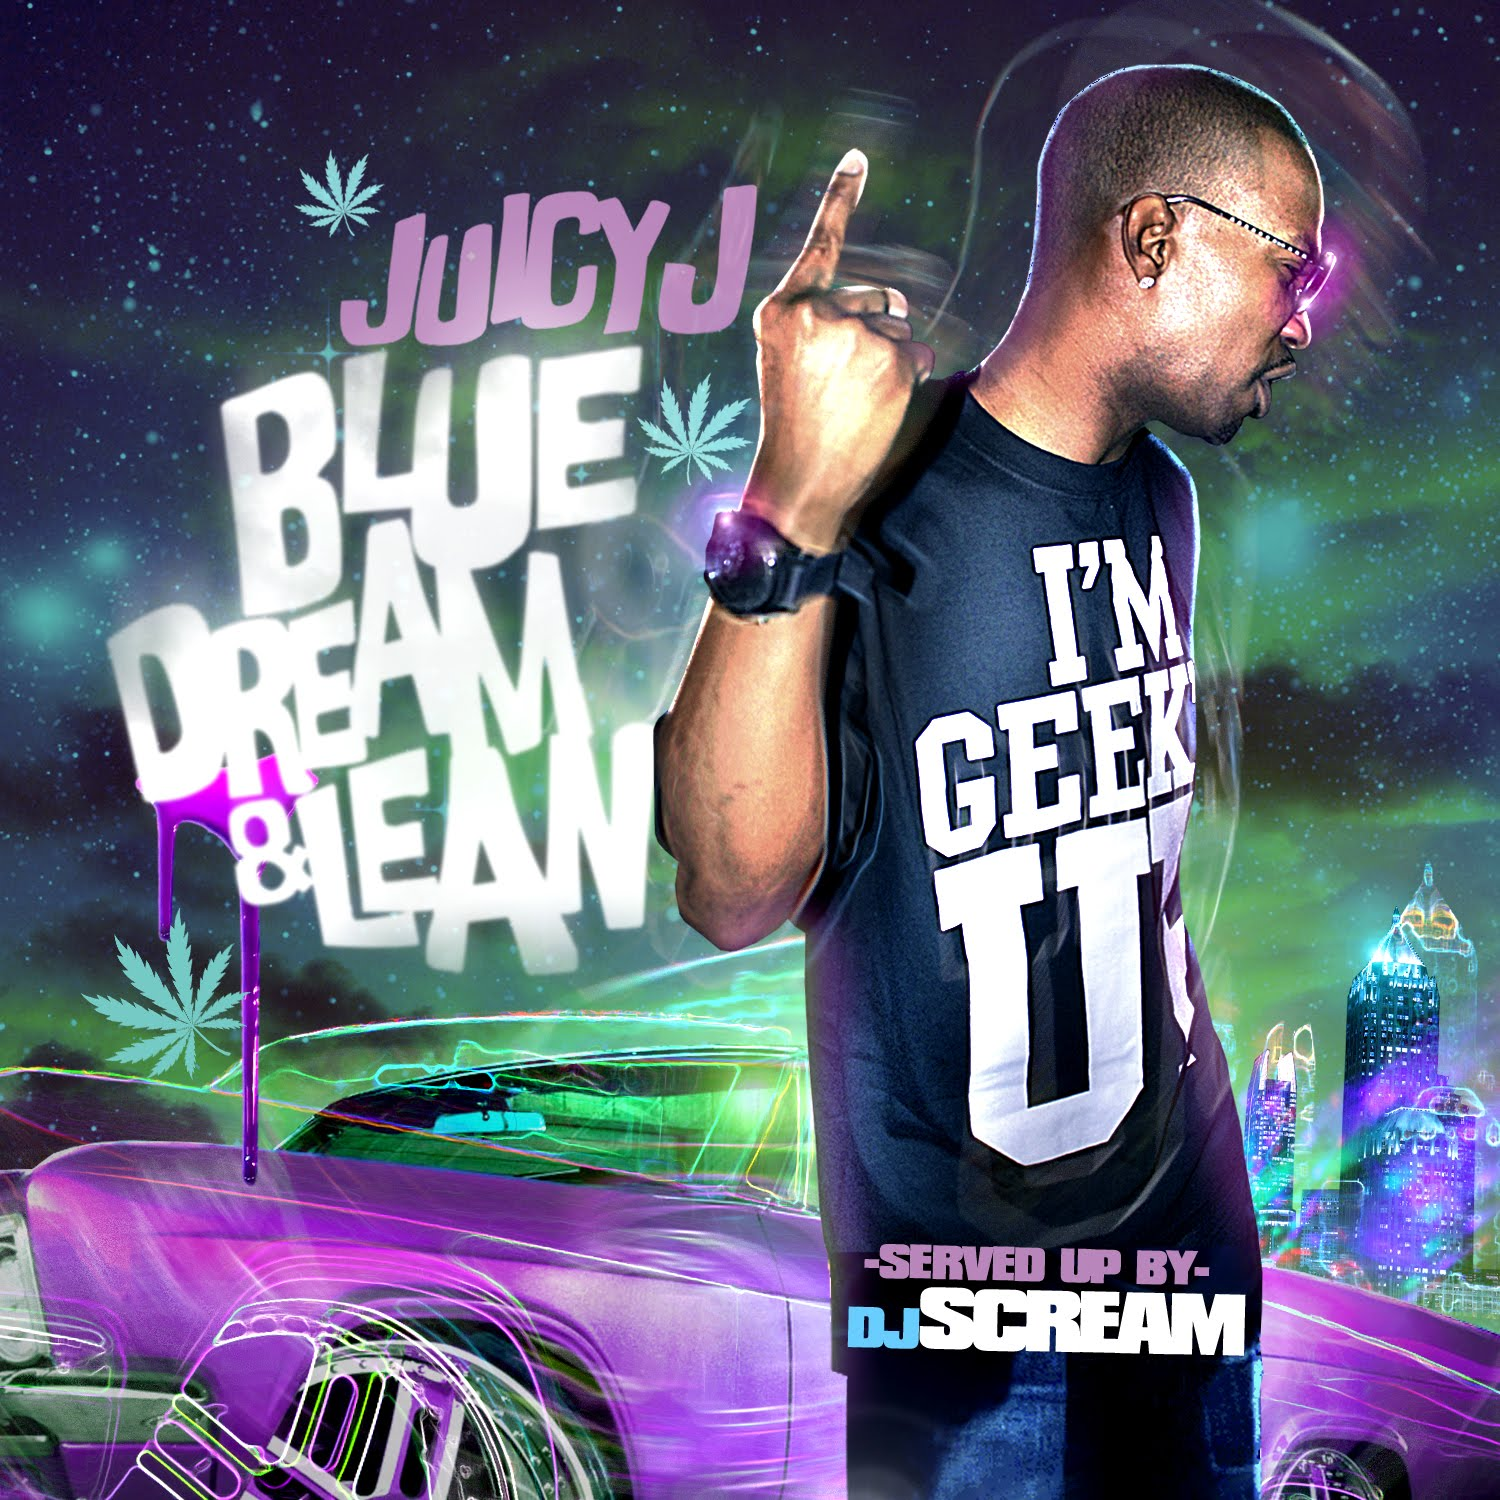 Download Juicy J <em>Blue Dream &#038; Lean</em> Mixtape